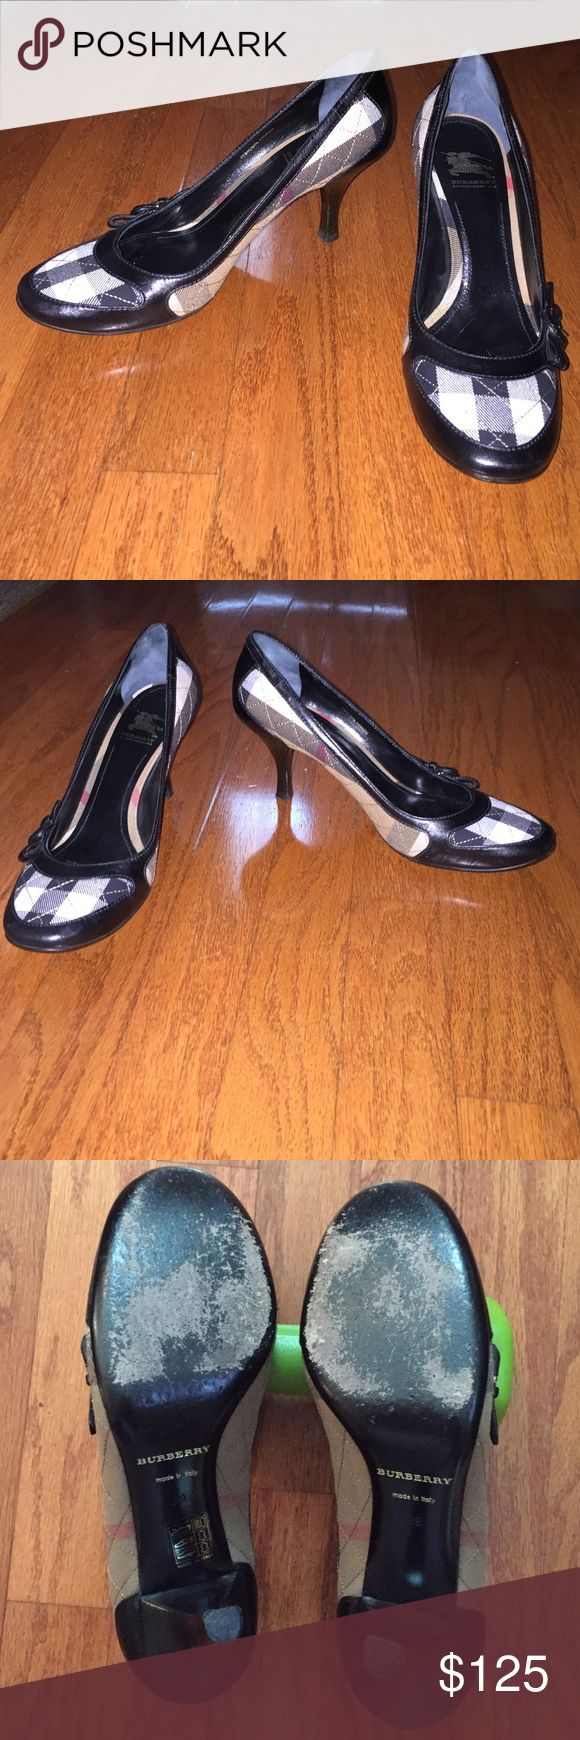 Burberry heels size 9, fits more like an 8.5 Gently worn Burberry heels. Only real sign of wear is on the bottom at the ball of the foot. The shoes say Euro size 39 (US size 9) but they fit more like a US size 8.5 Burberry Shoes Heels